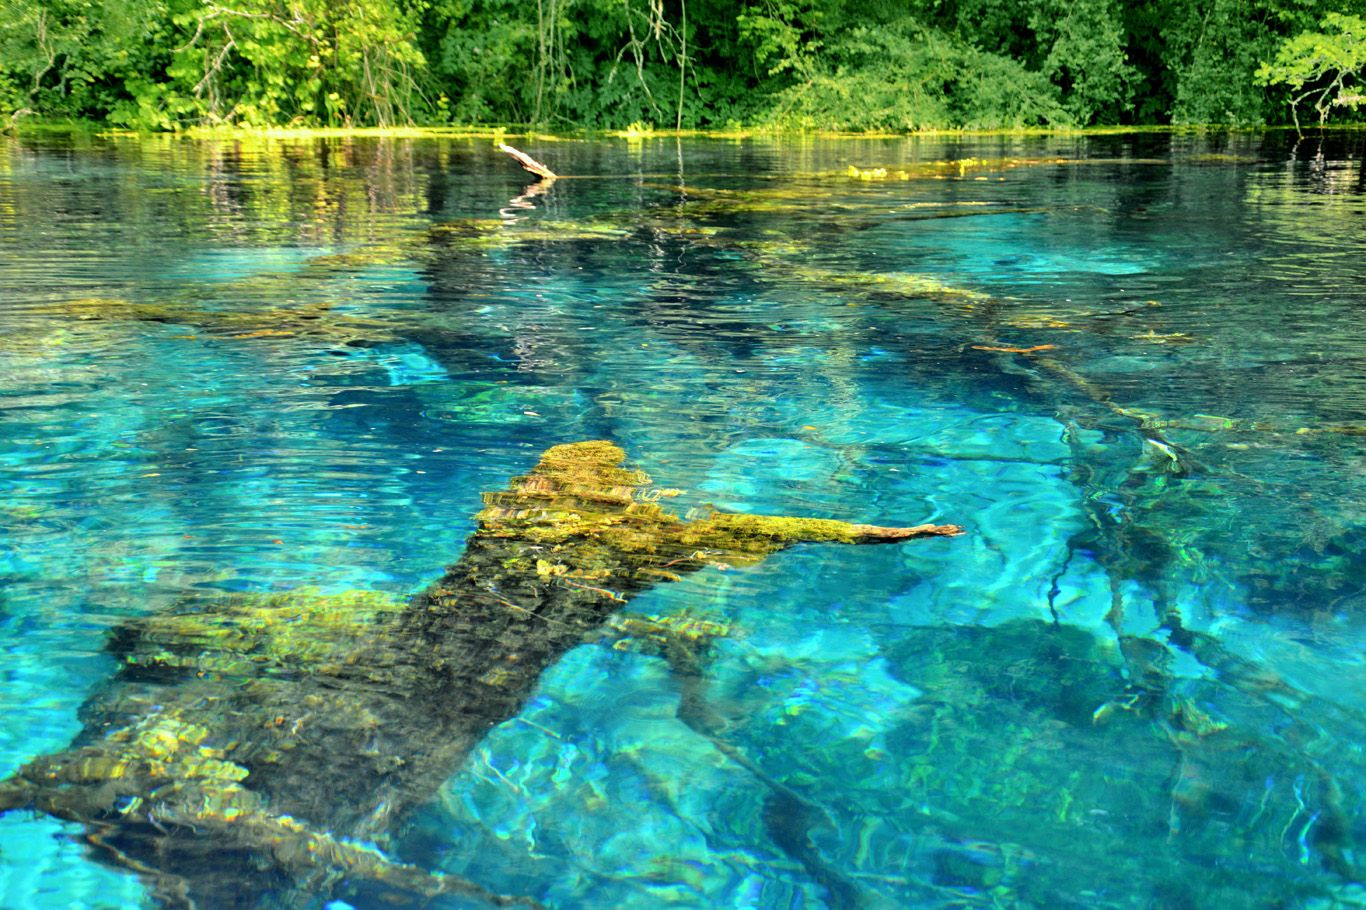 One Of The Clearest Lakes In The World At The Blue Eye Spring In Albania Turquoise Waters And Fairy Tale Like S Albania Travel Visit Albania Adventure Travel